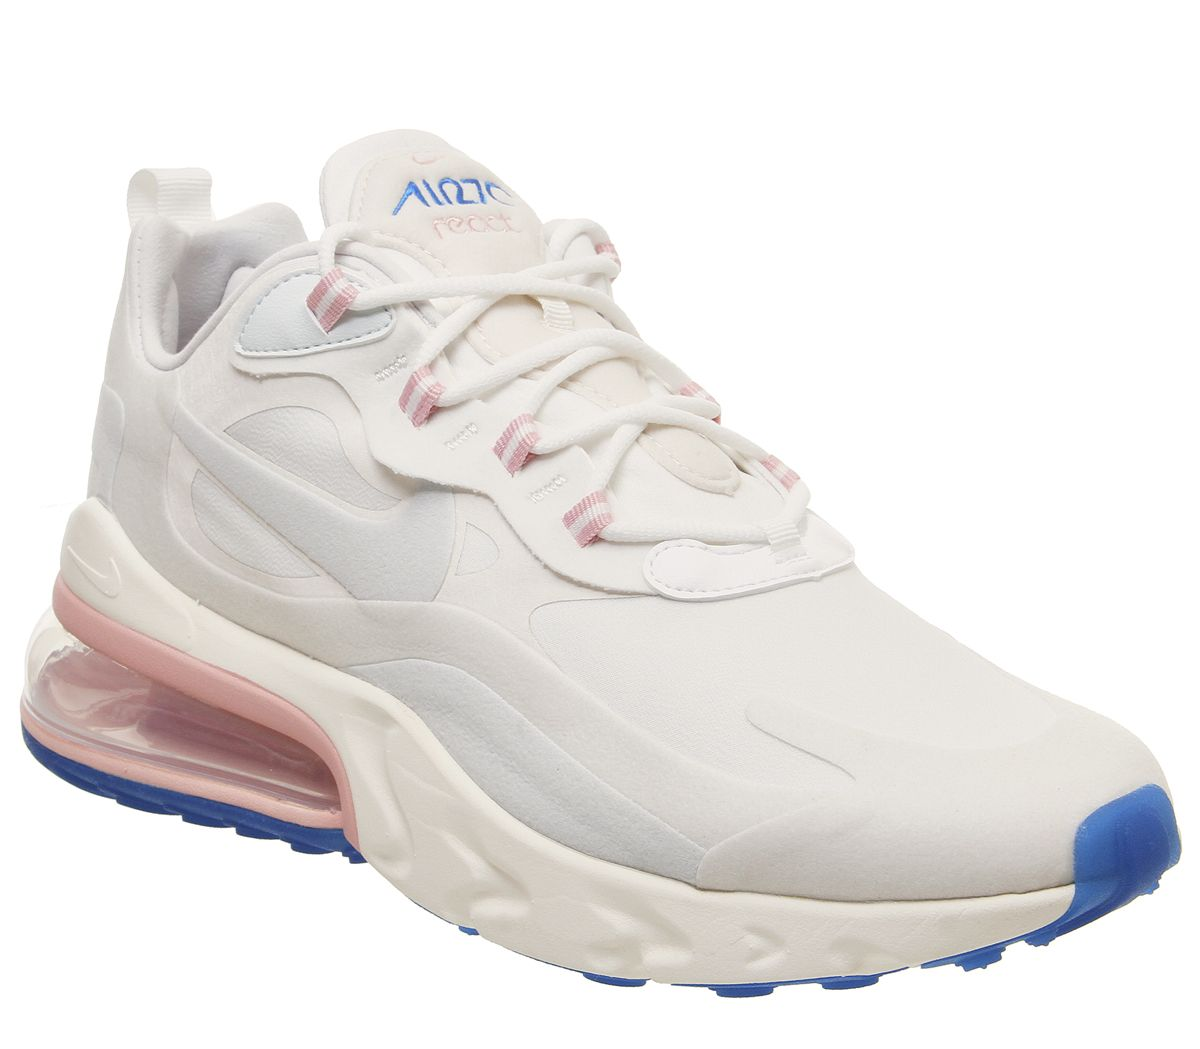 on sale feb1f 328f4 Air Max 270 React Trainers